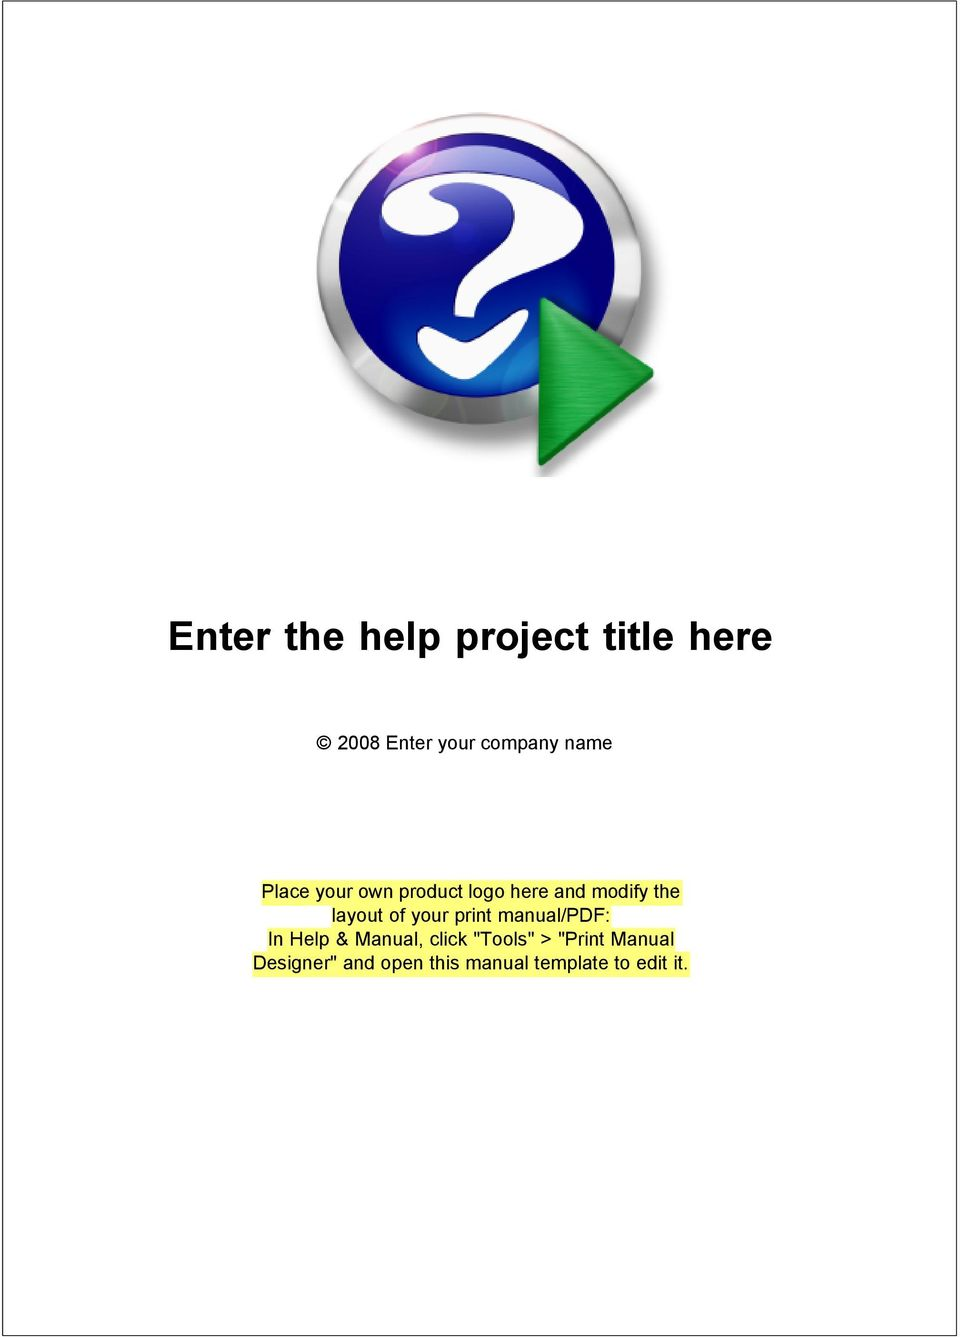 "manual/pdf: In Help & Manual, click ""Tools"" > ""Print"